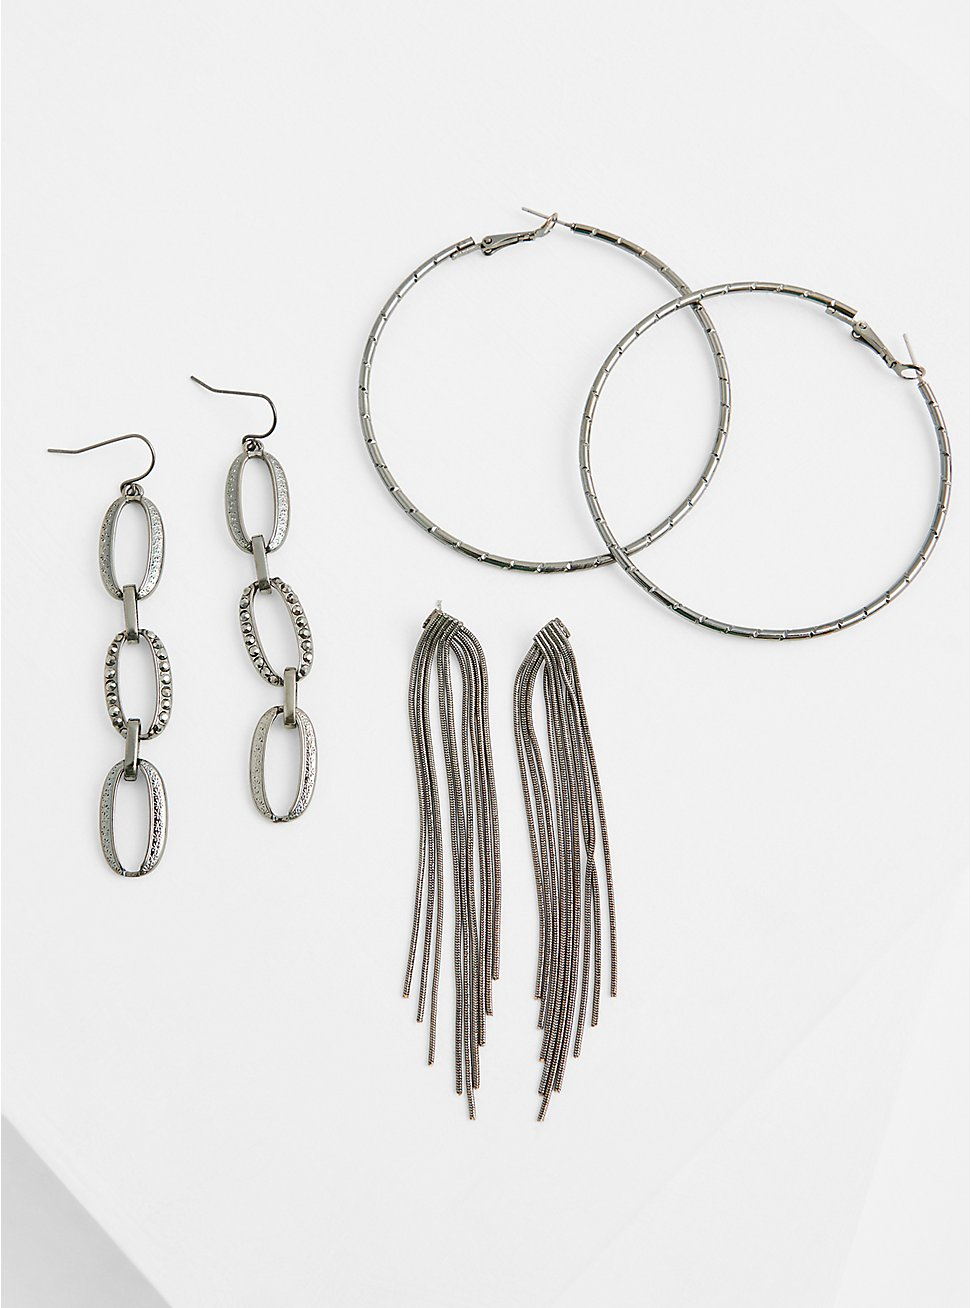 Burnished Silver-Tone Fringe Earrings Set - Set of 3, , hi-res